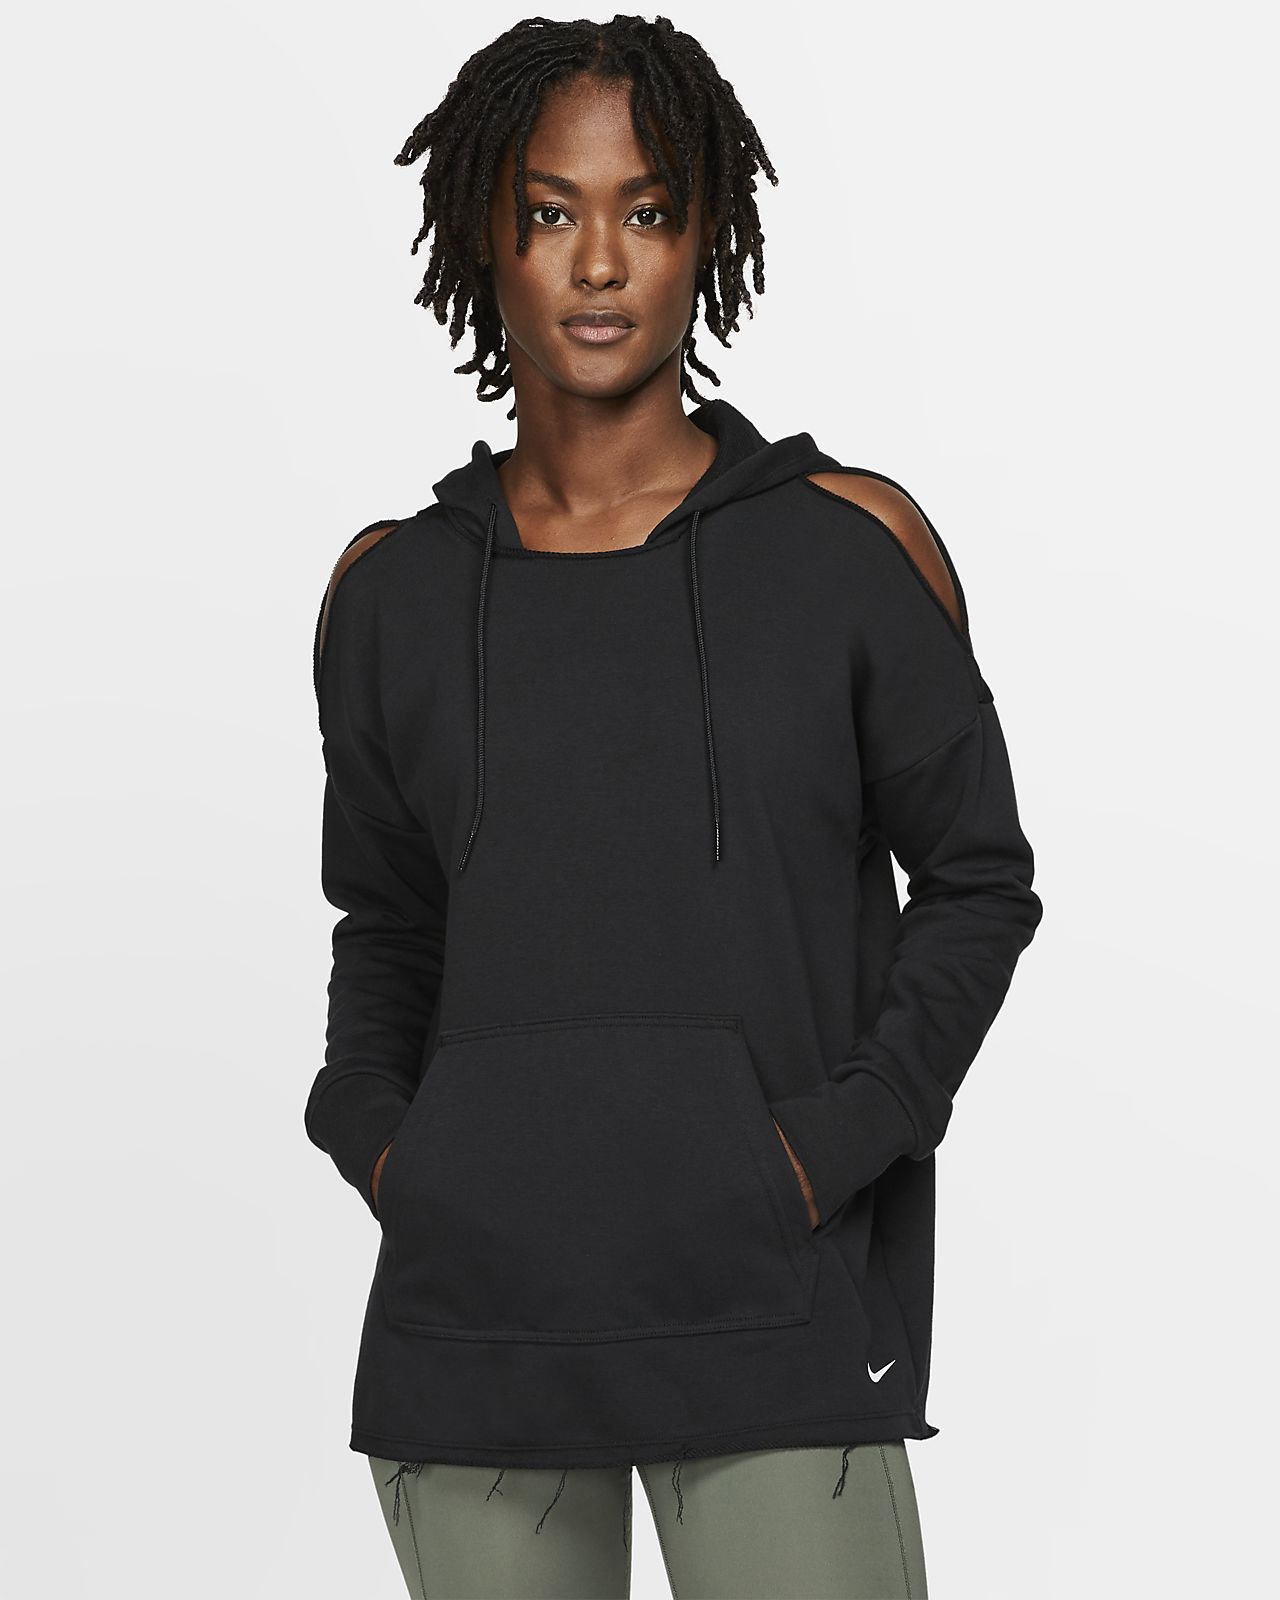 Nike Icon Clash Women's Fleece Training Hoodie